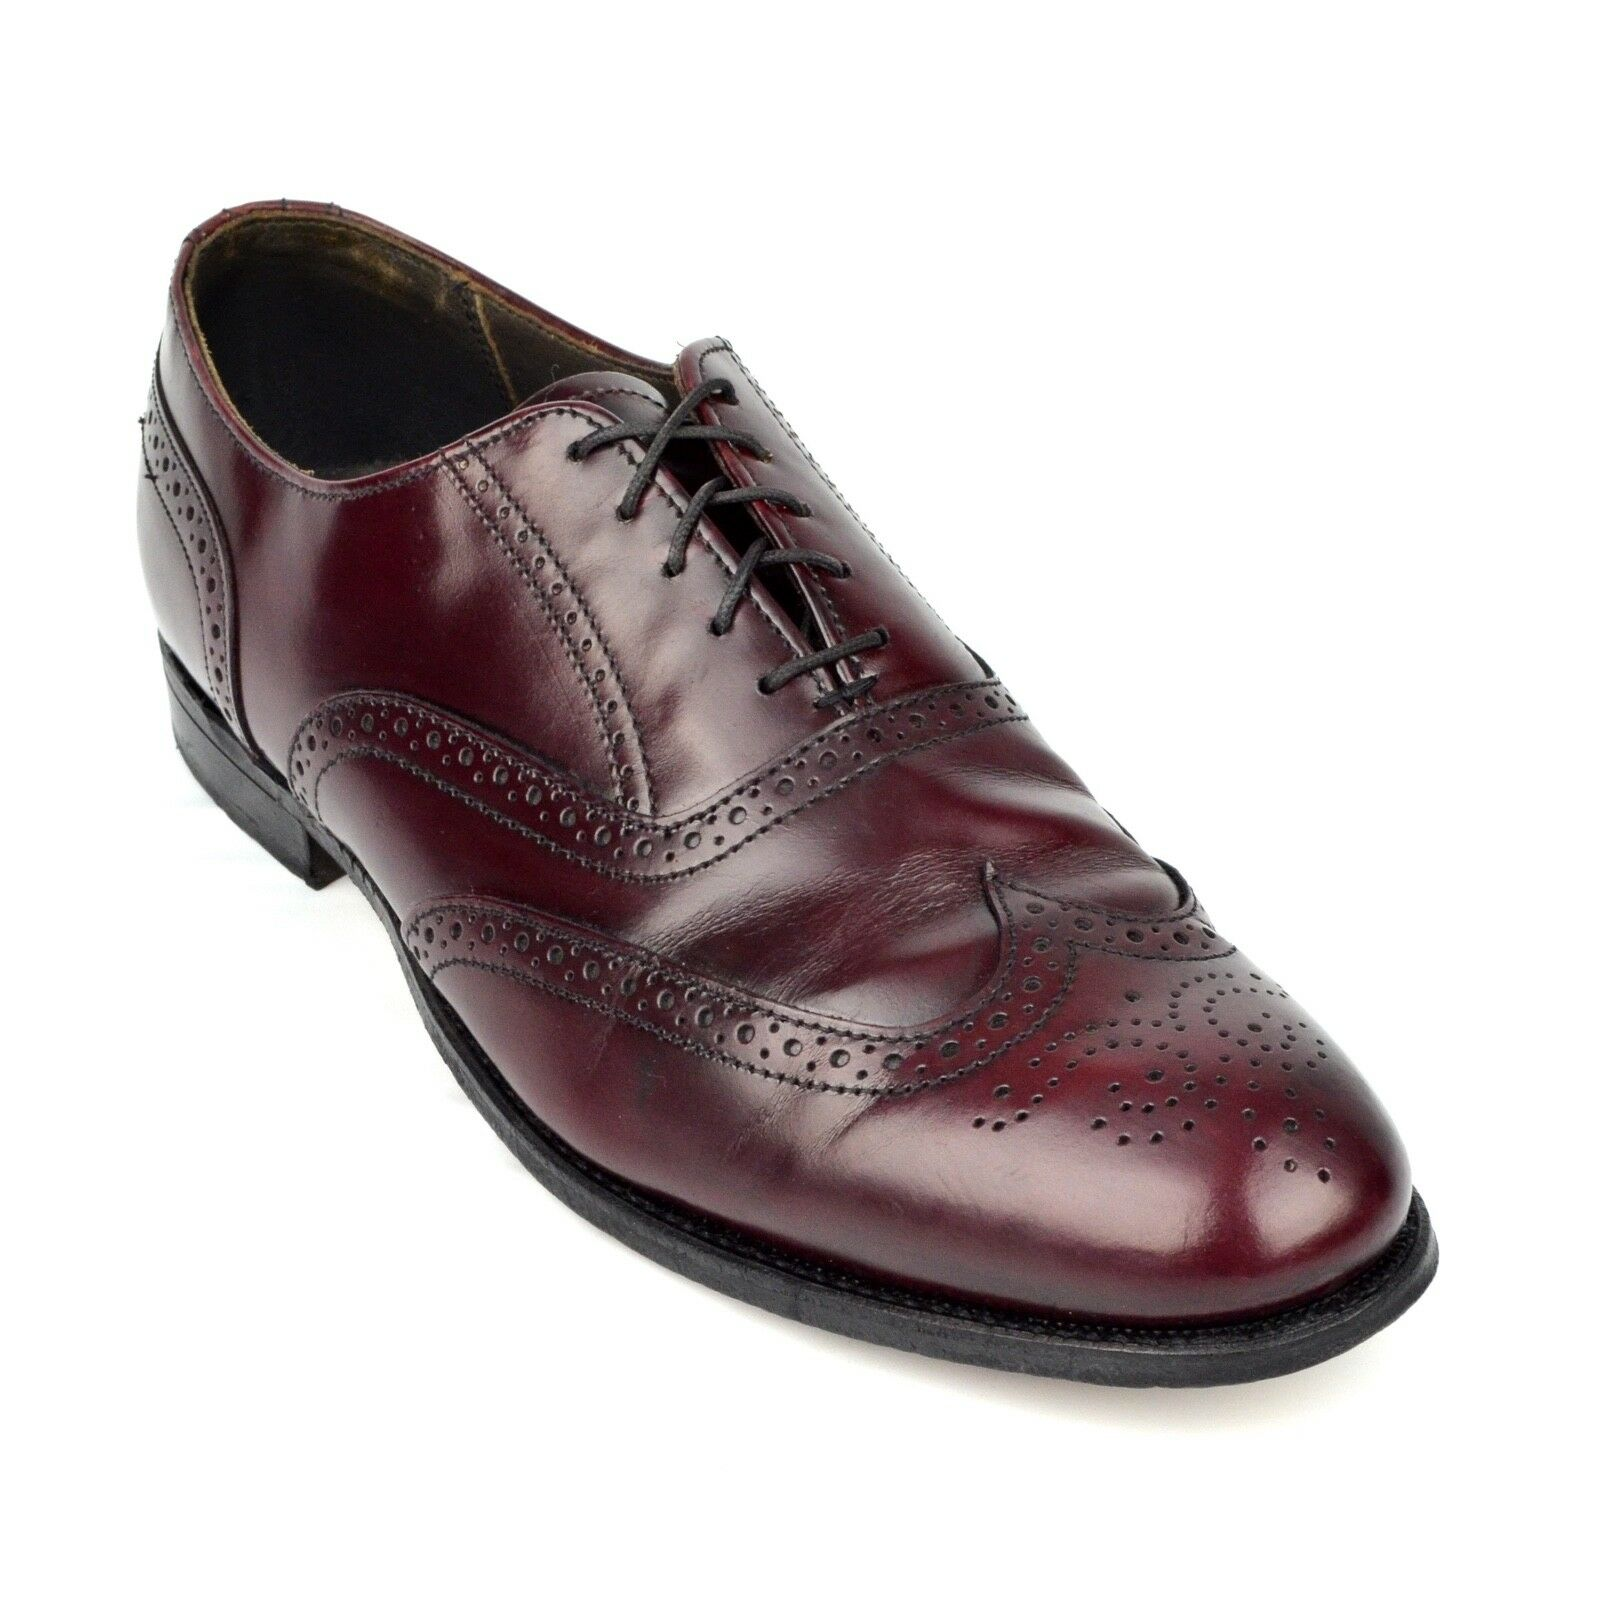 DEXTER Mens Wing Tip Brogue Lace Up shoes Sz 11.5 M Dress Oxford Burgundy Leather